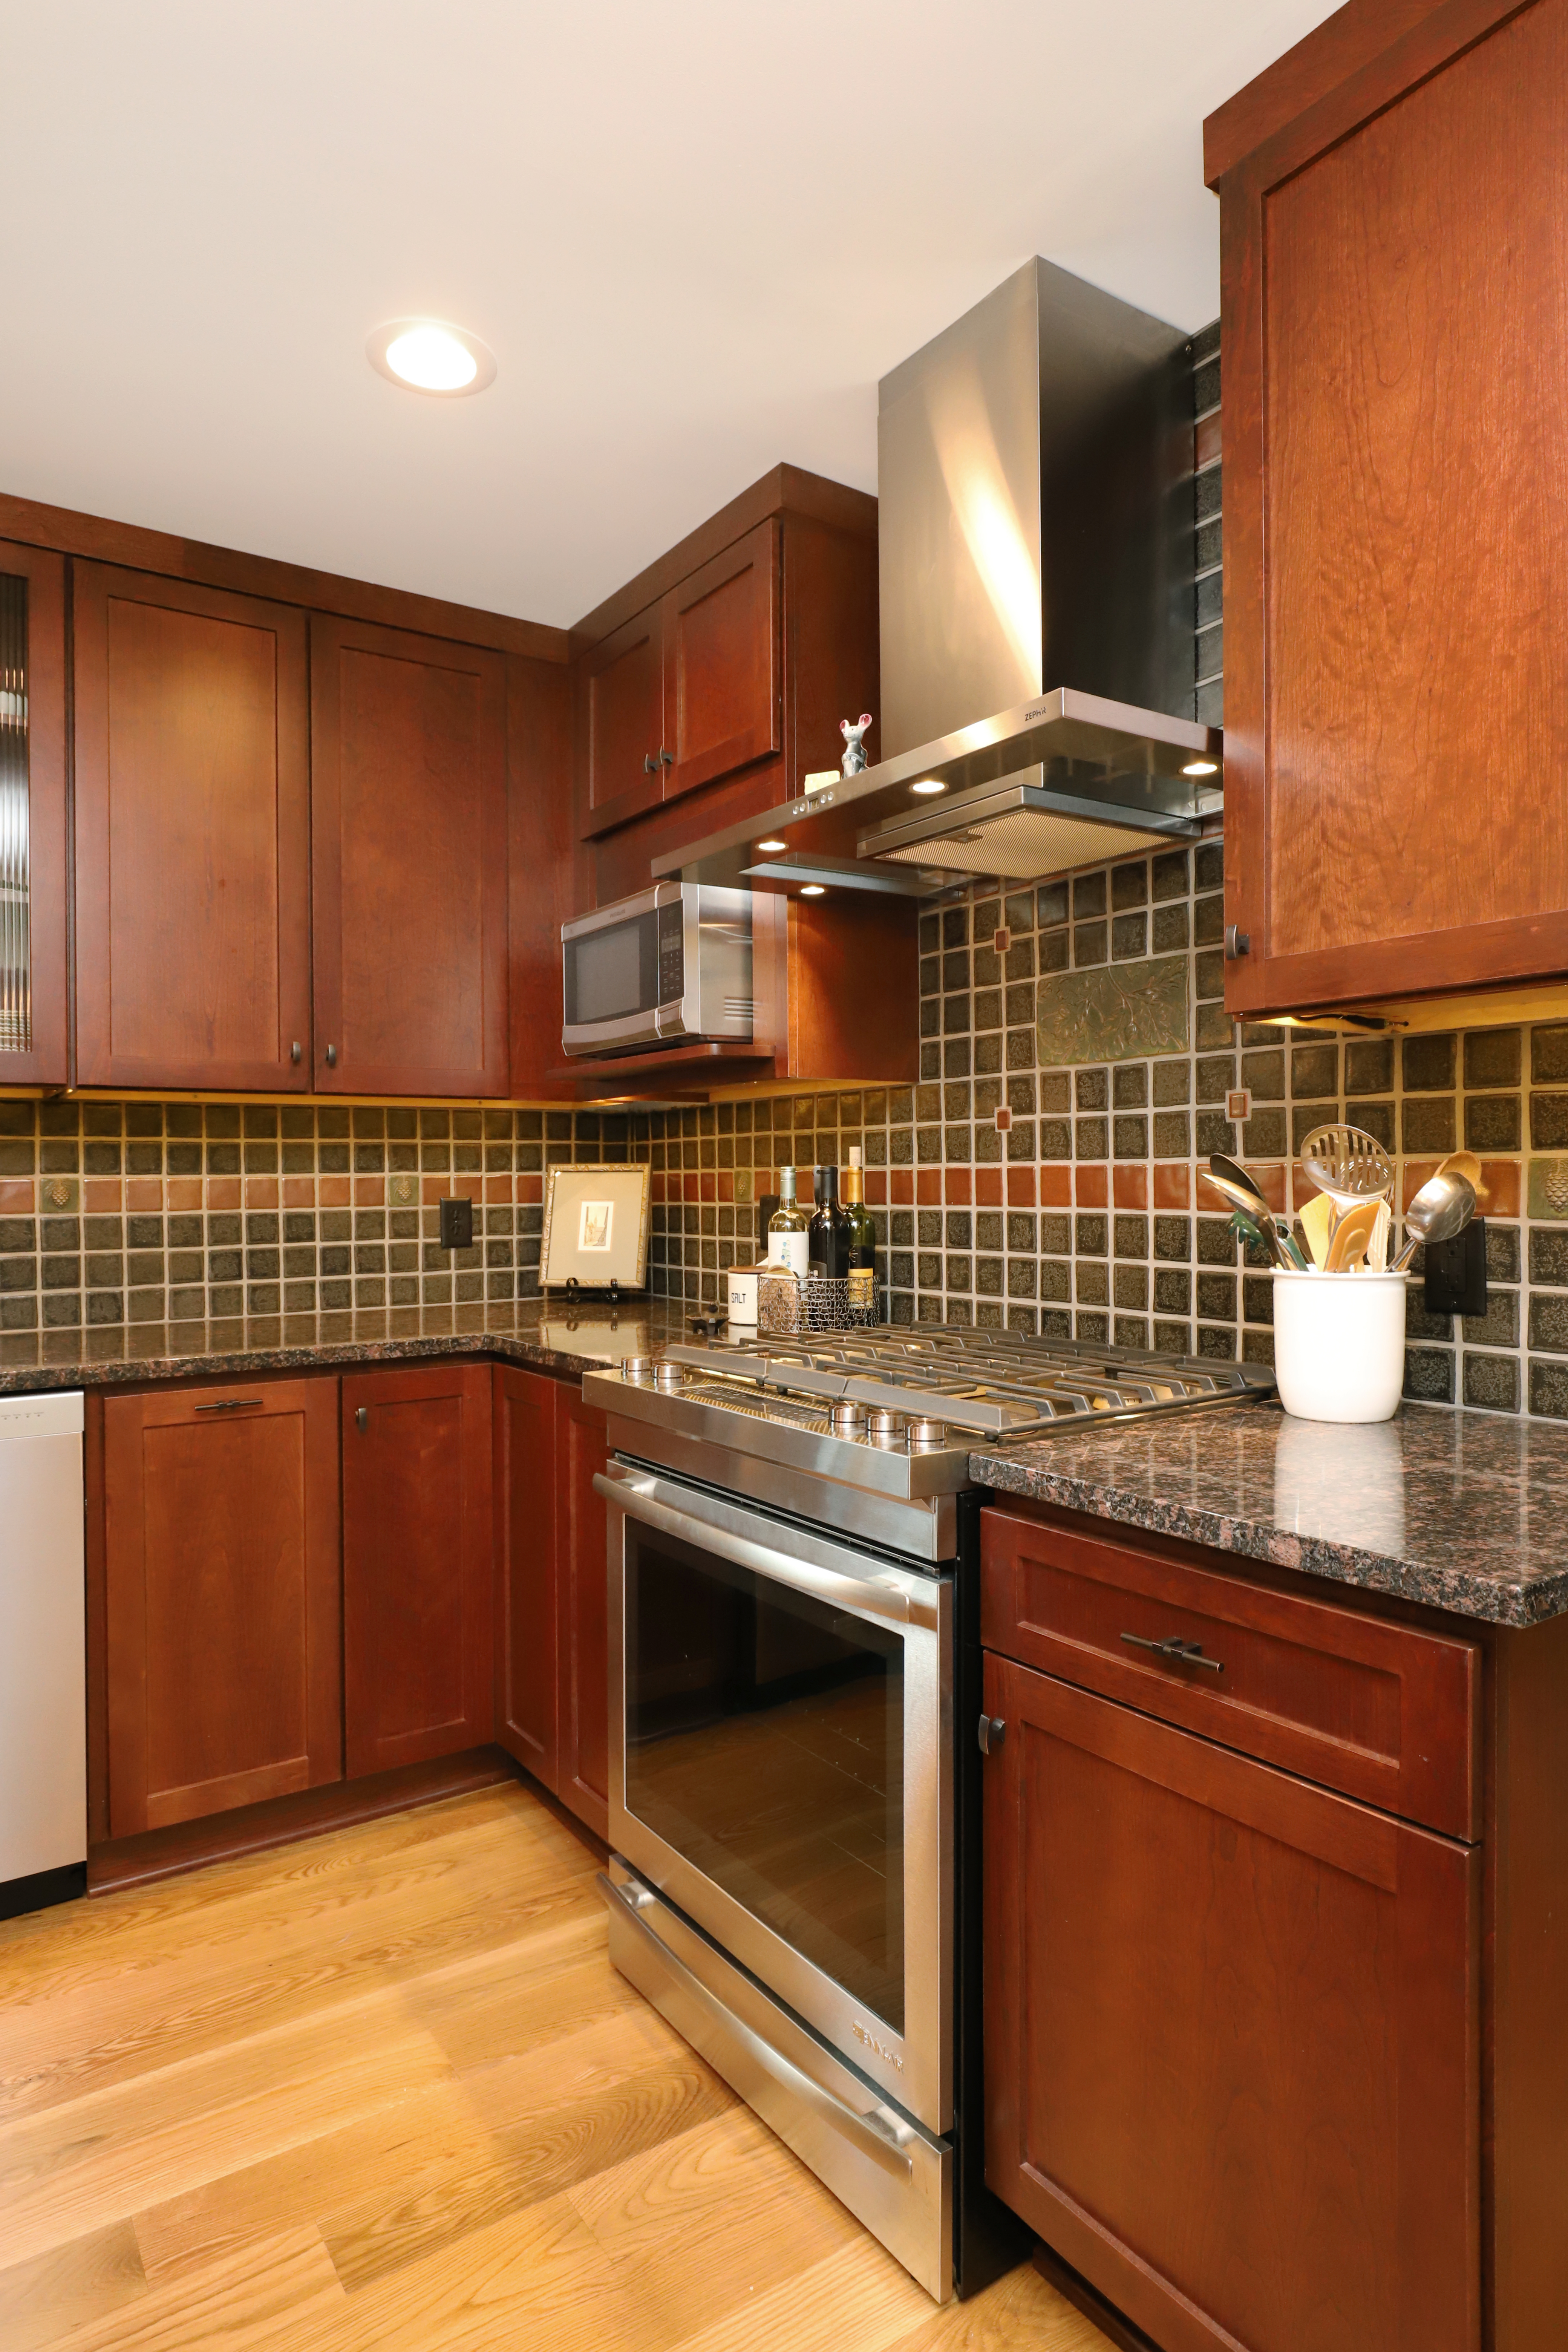 5 Ideas For Creating Focal Points In Your Kitchen